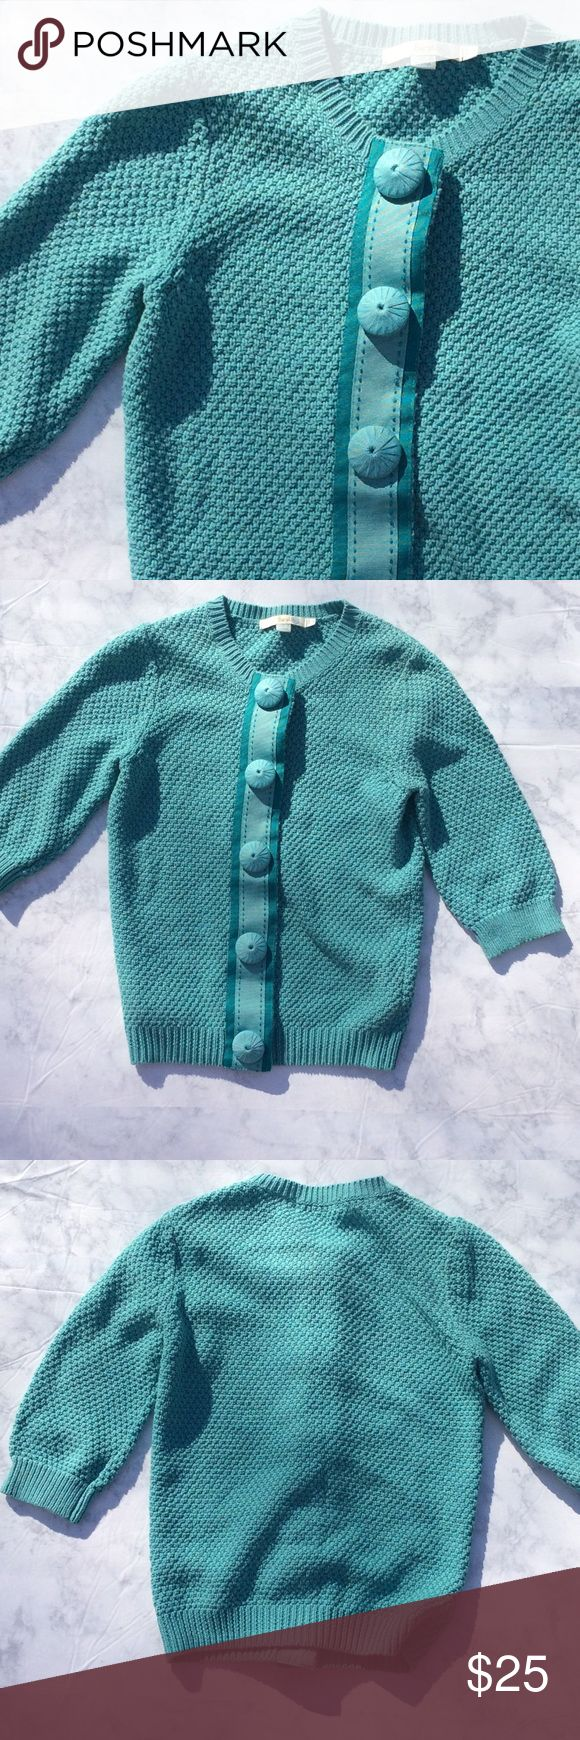 Boden Teal Cardigan Boden Teal Cardigan with ribbon accents. Size US 4. Boden Sweaters Cardigans